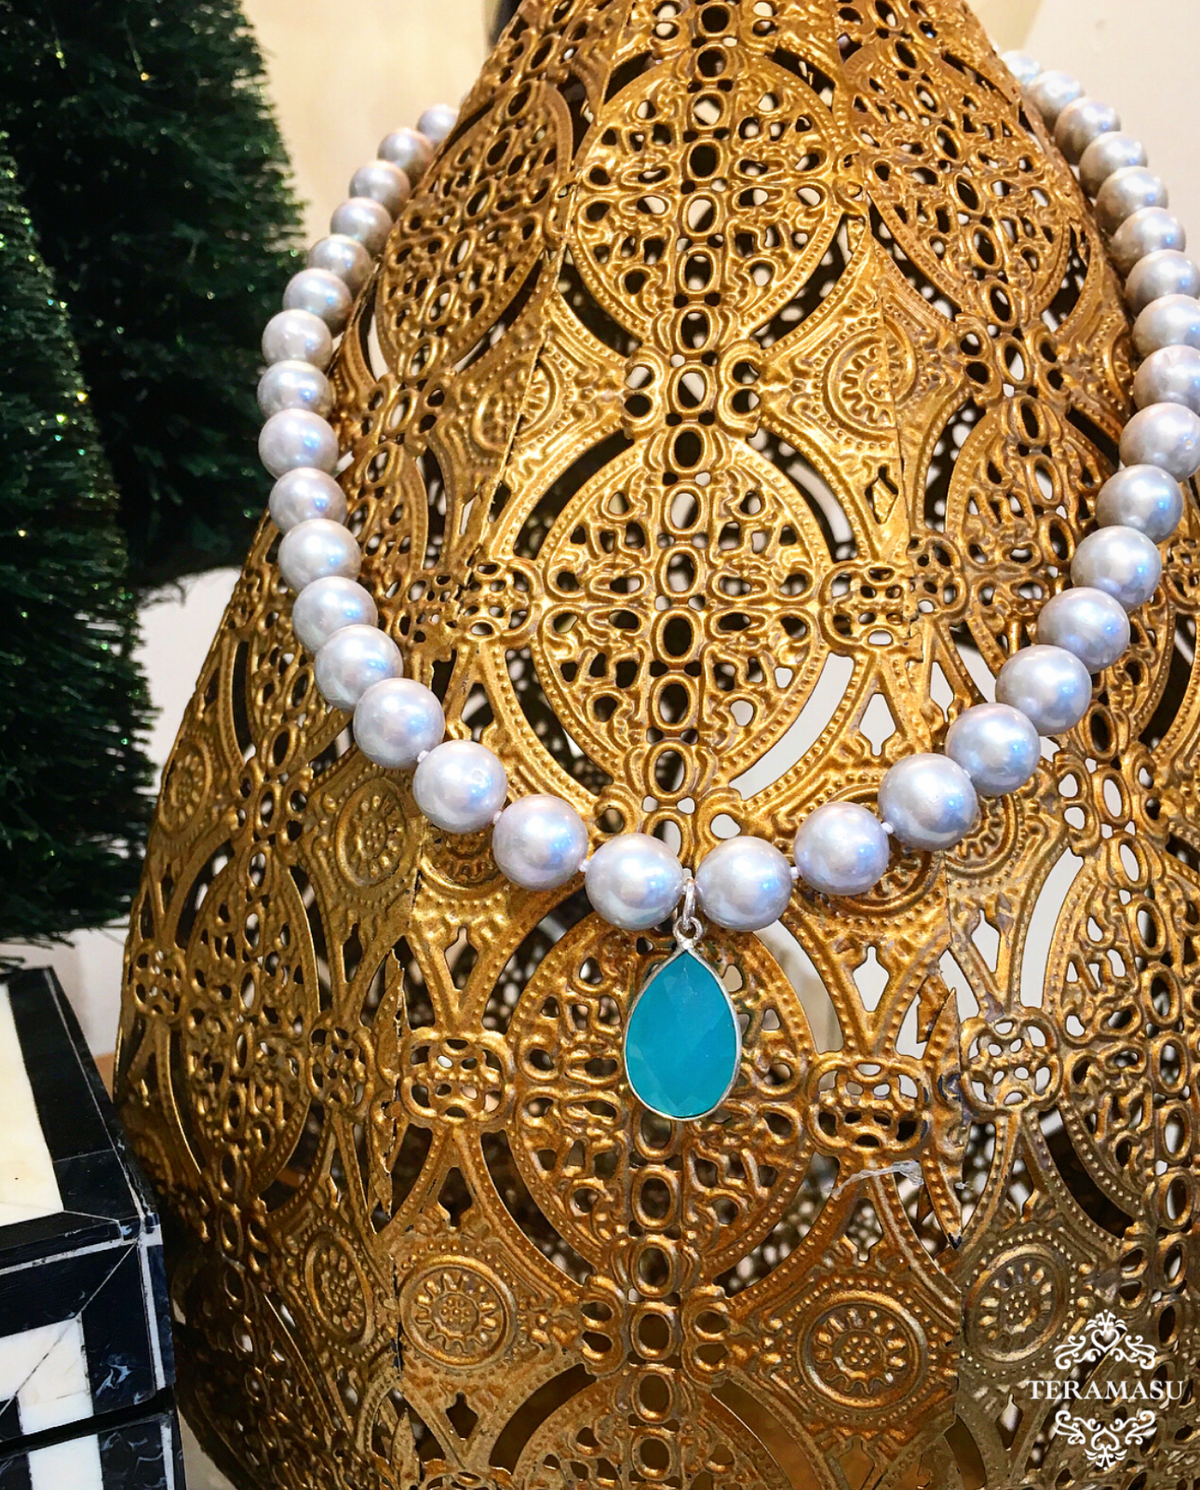 Monday Must-Have: Gorgeous & New, Handmade Designer Teramasu Grey Pearl with Aqua Chalcedony Pendant Necklace